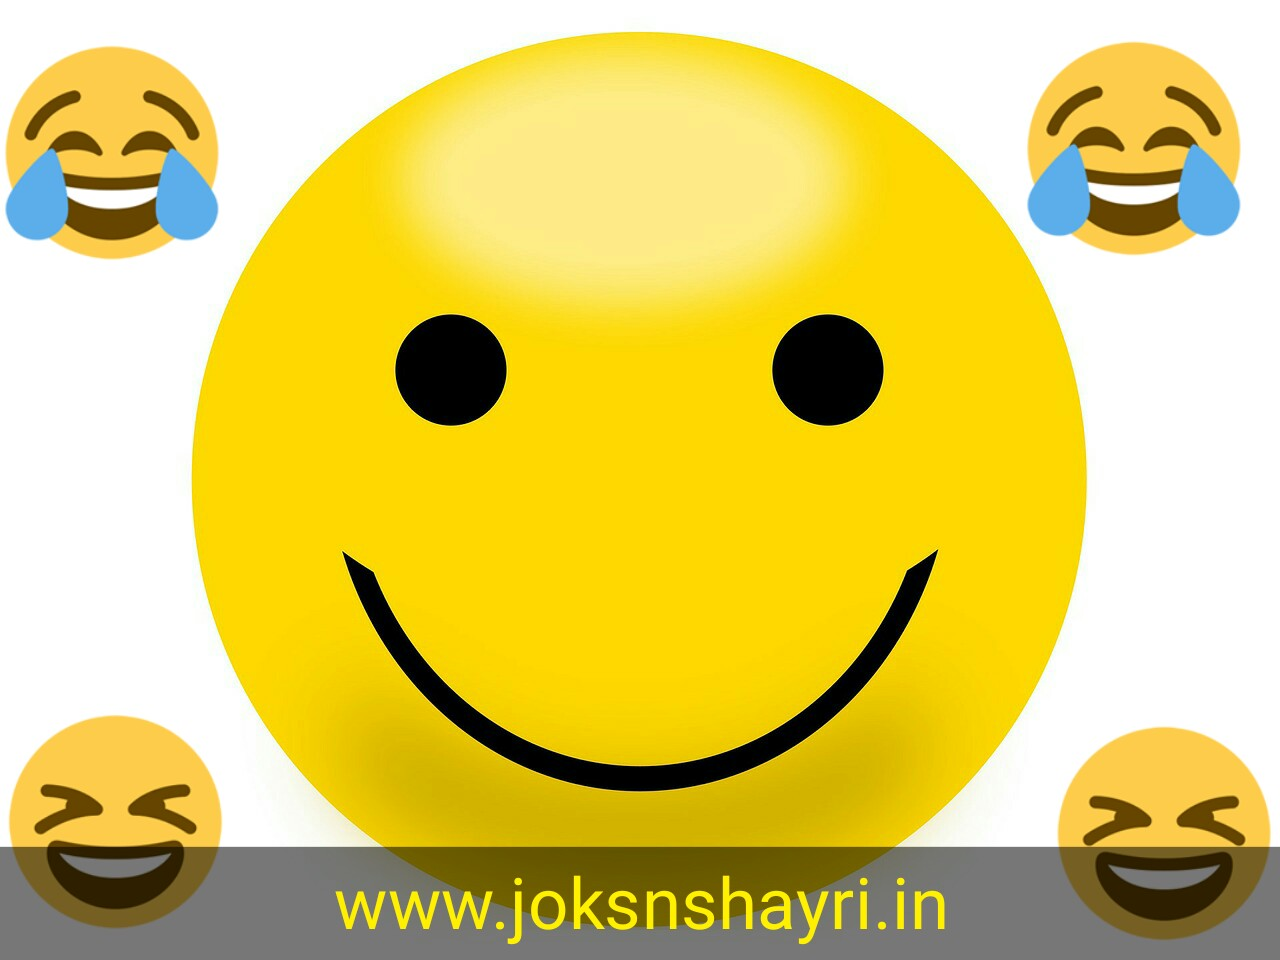 Jokes and Shayari